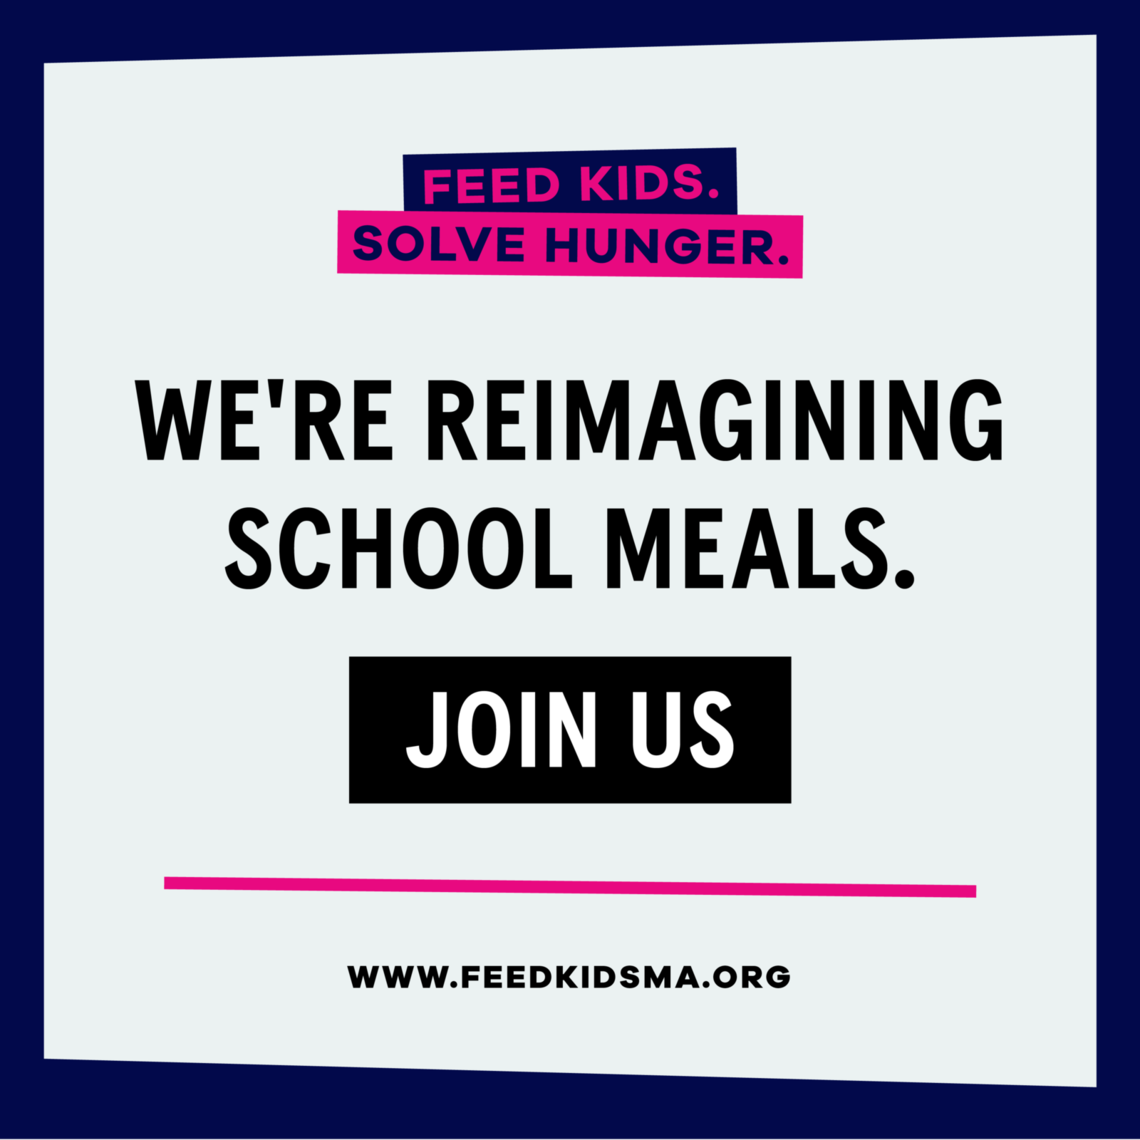 We're reimagining school meals. Join us on our Feed Kids Campaign